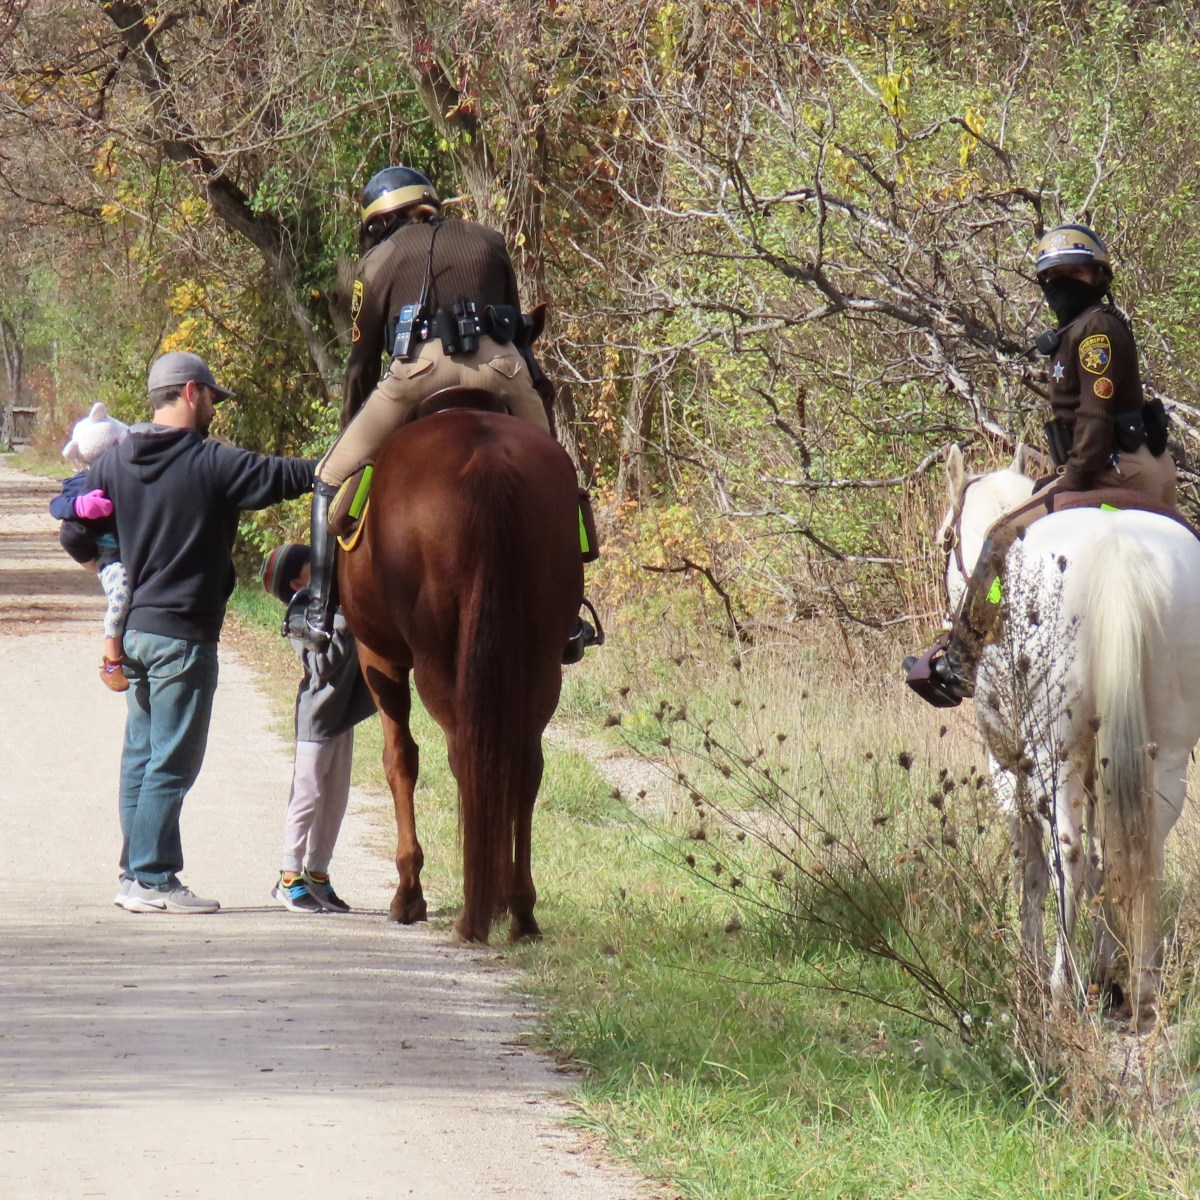 Two Sheriff Deputies on horseback stop to talk to a man and two young children on a trail